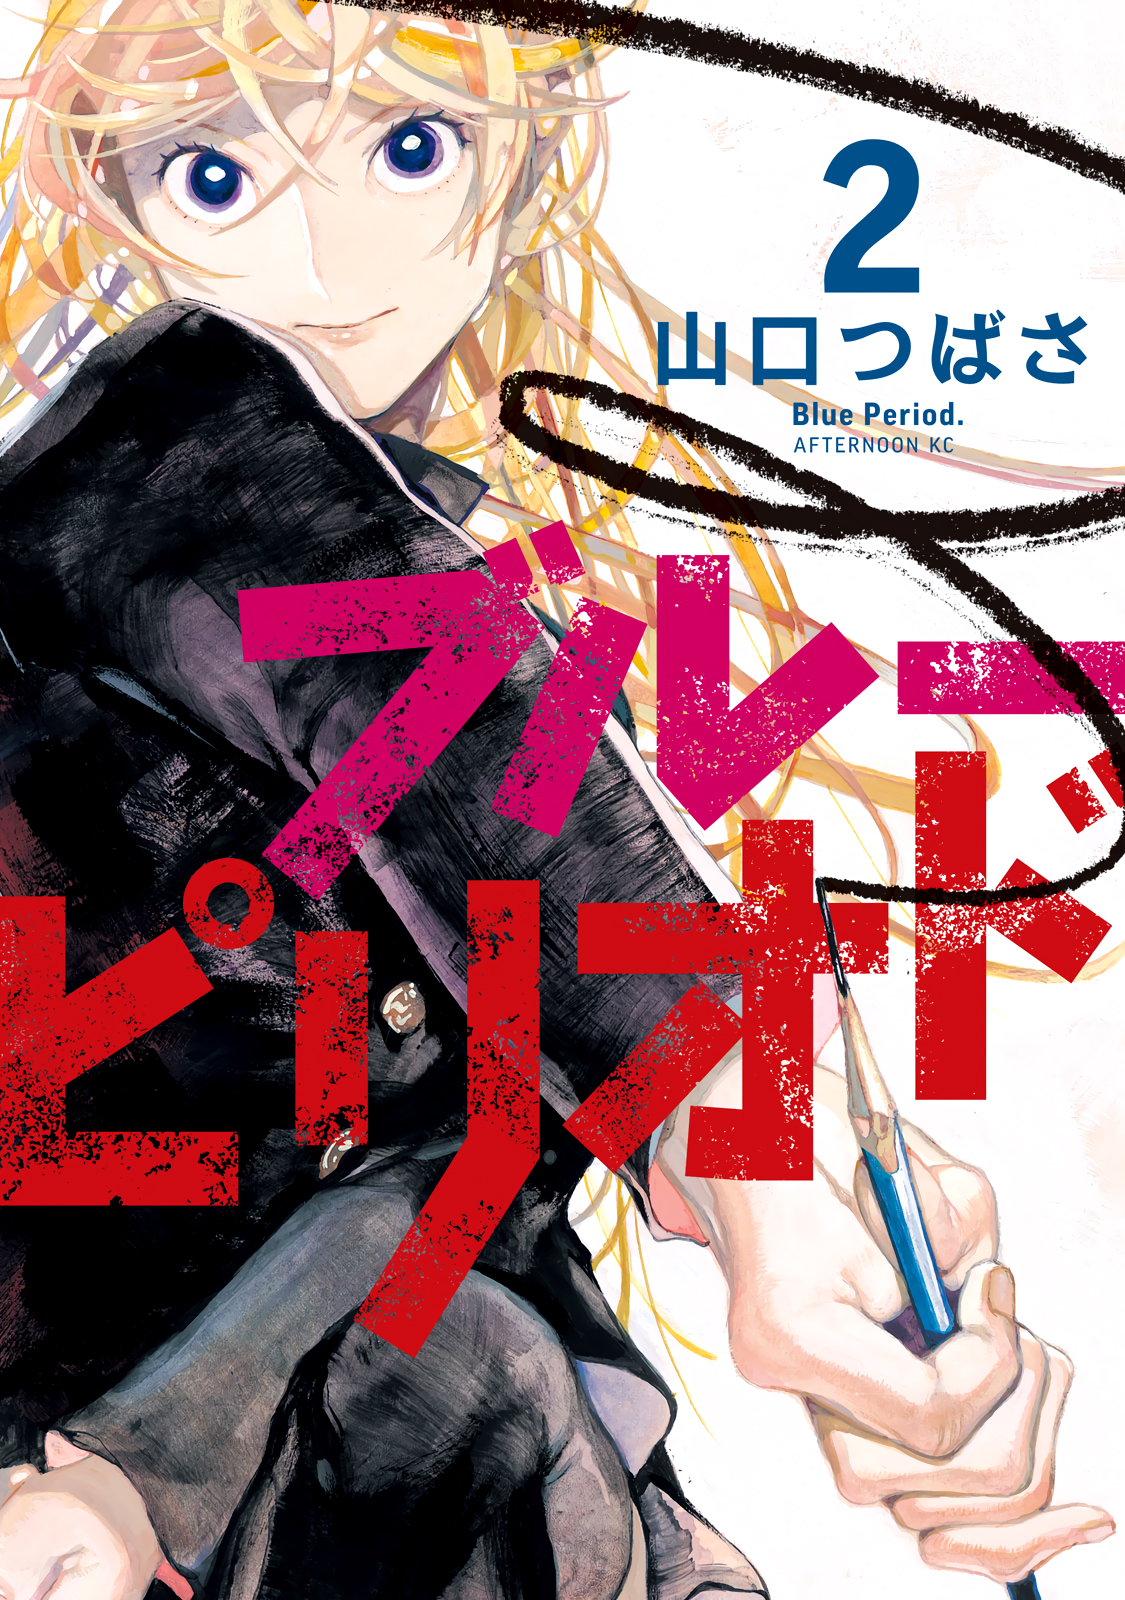 Blue Period Vol. 2 Ch. 5 Cram School Debut of the Dead